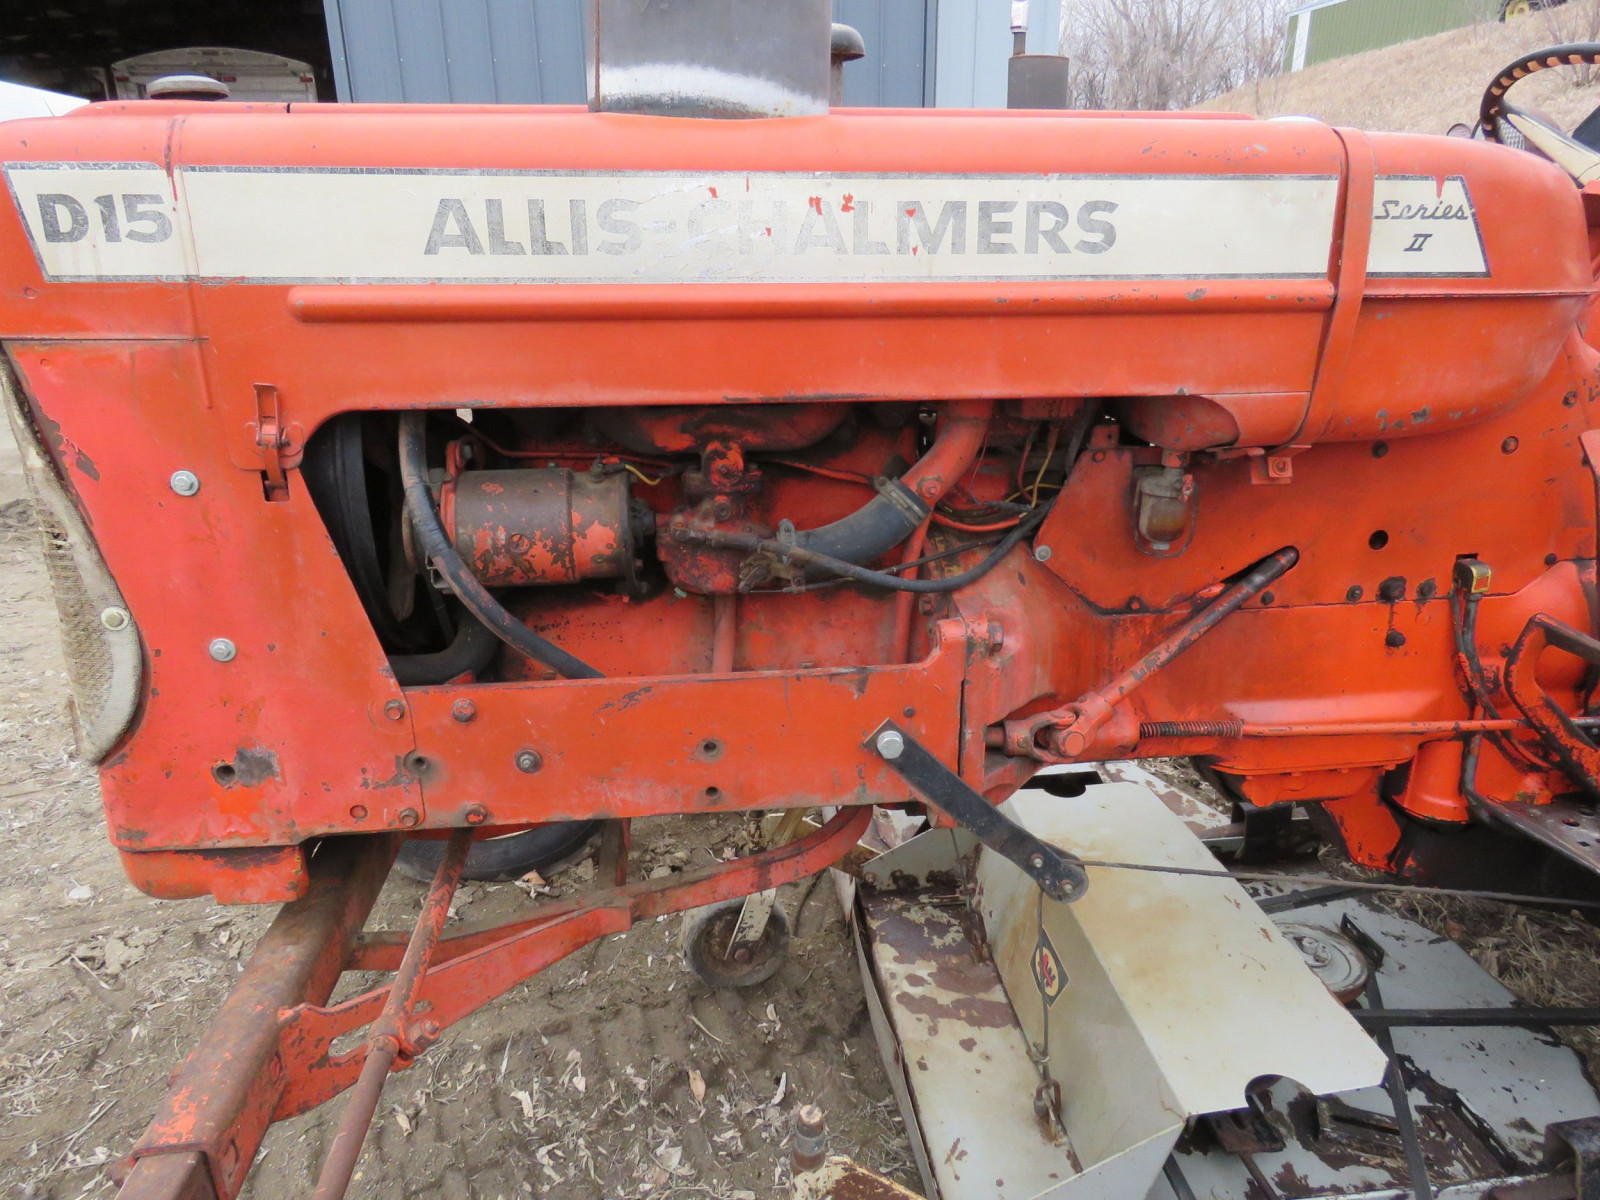 Allis Chalmers D15 with Mower - Image 4